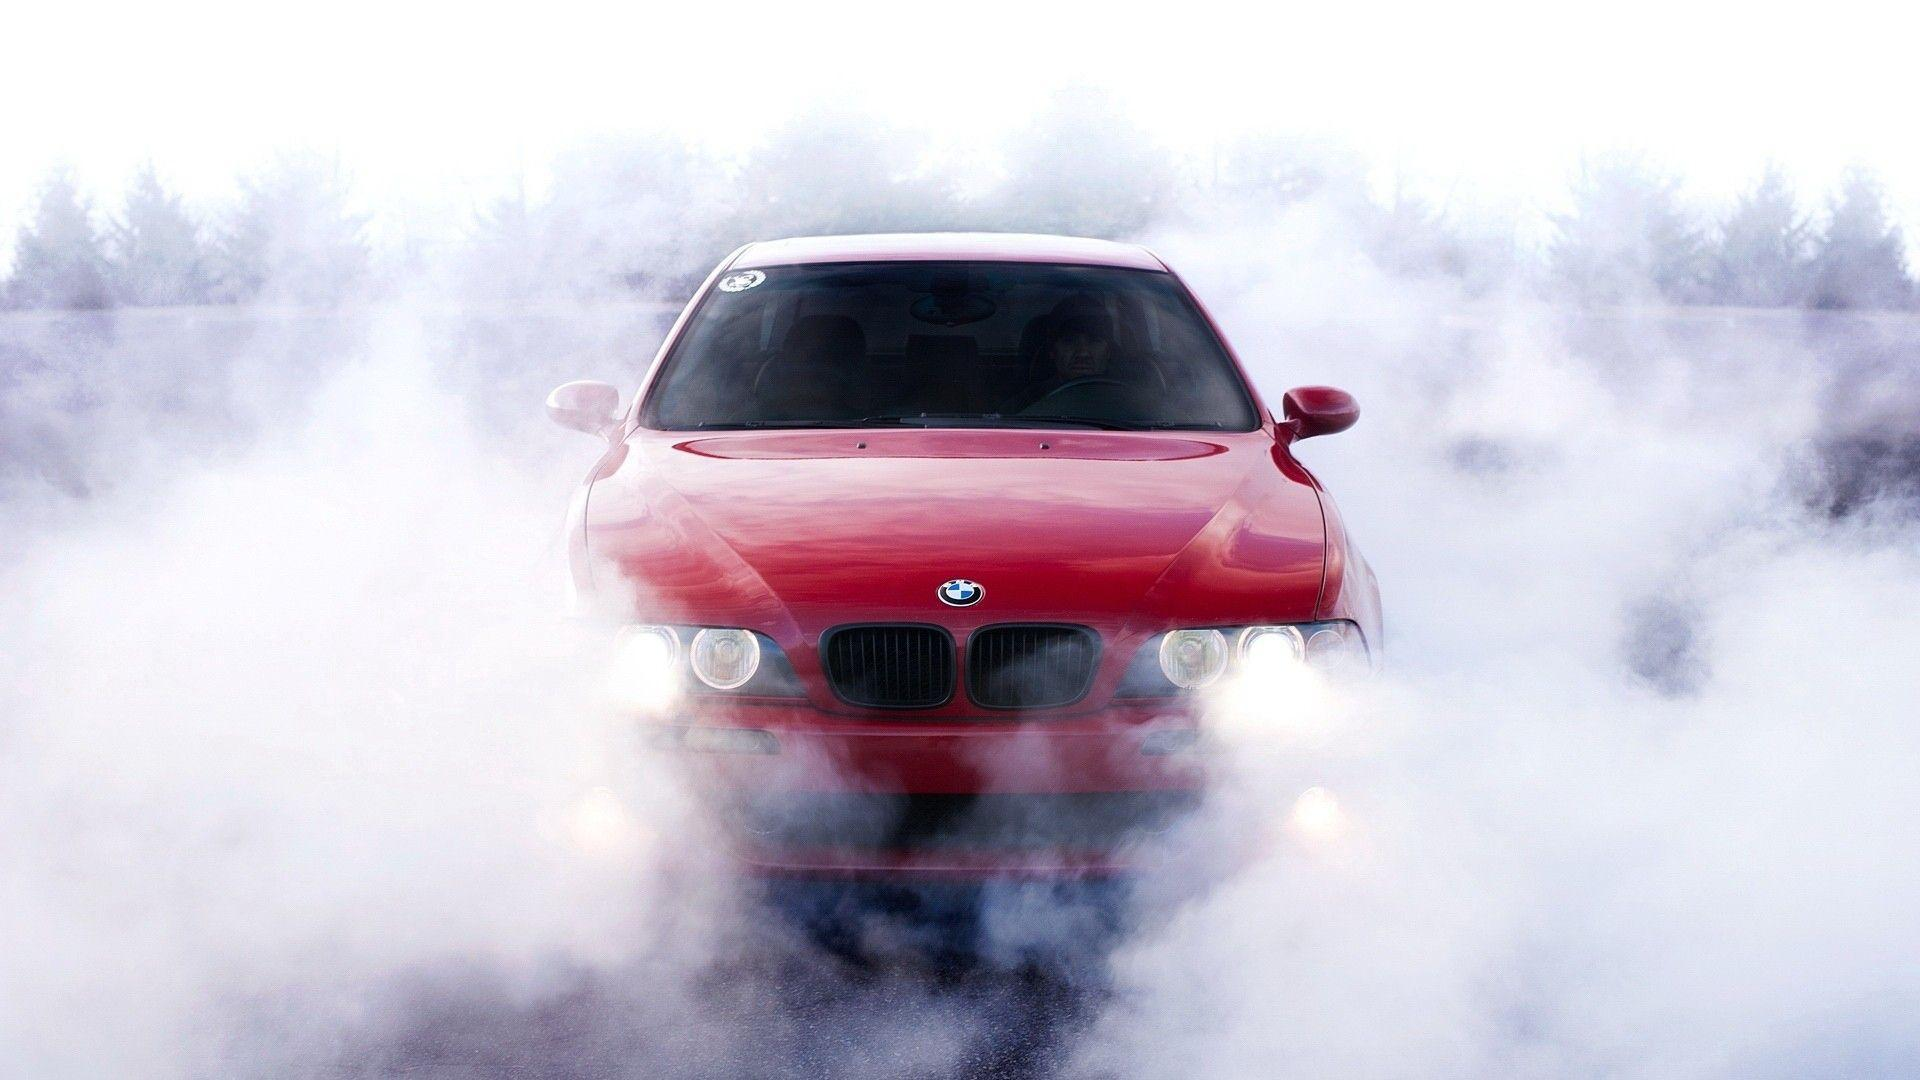 Bmw E39 M5 Wallpapers 4214 Hd Wallpapers in Cars